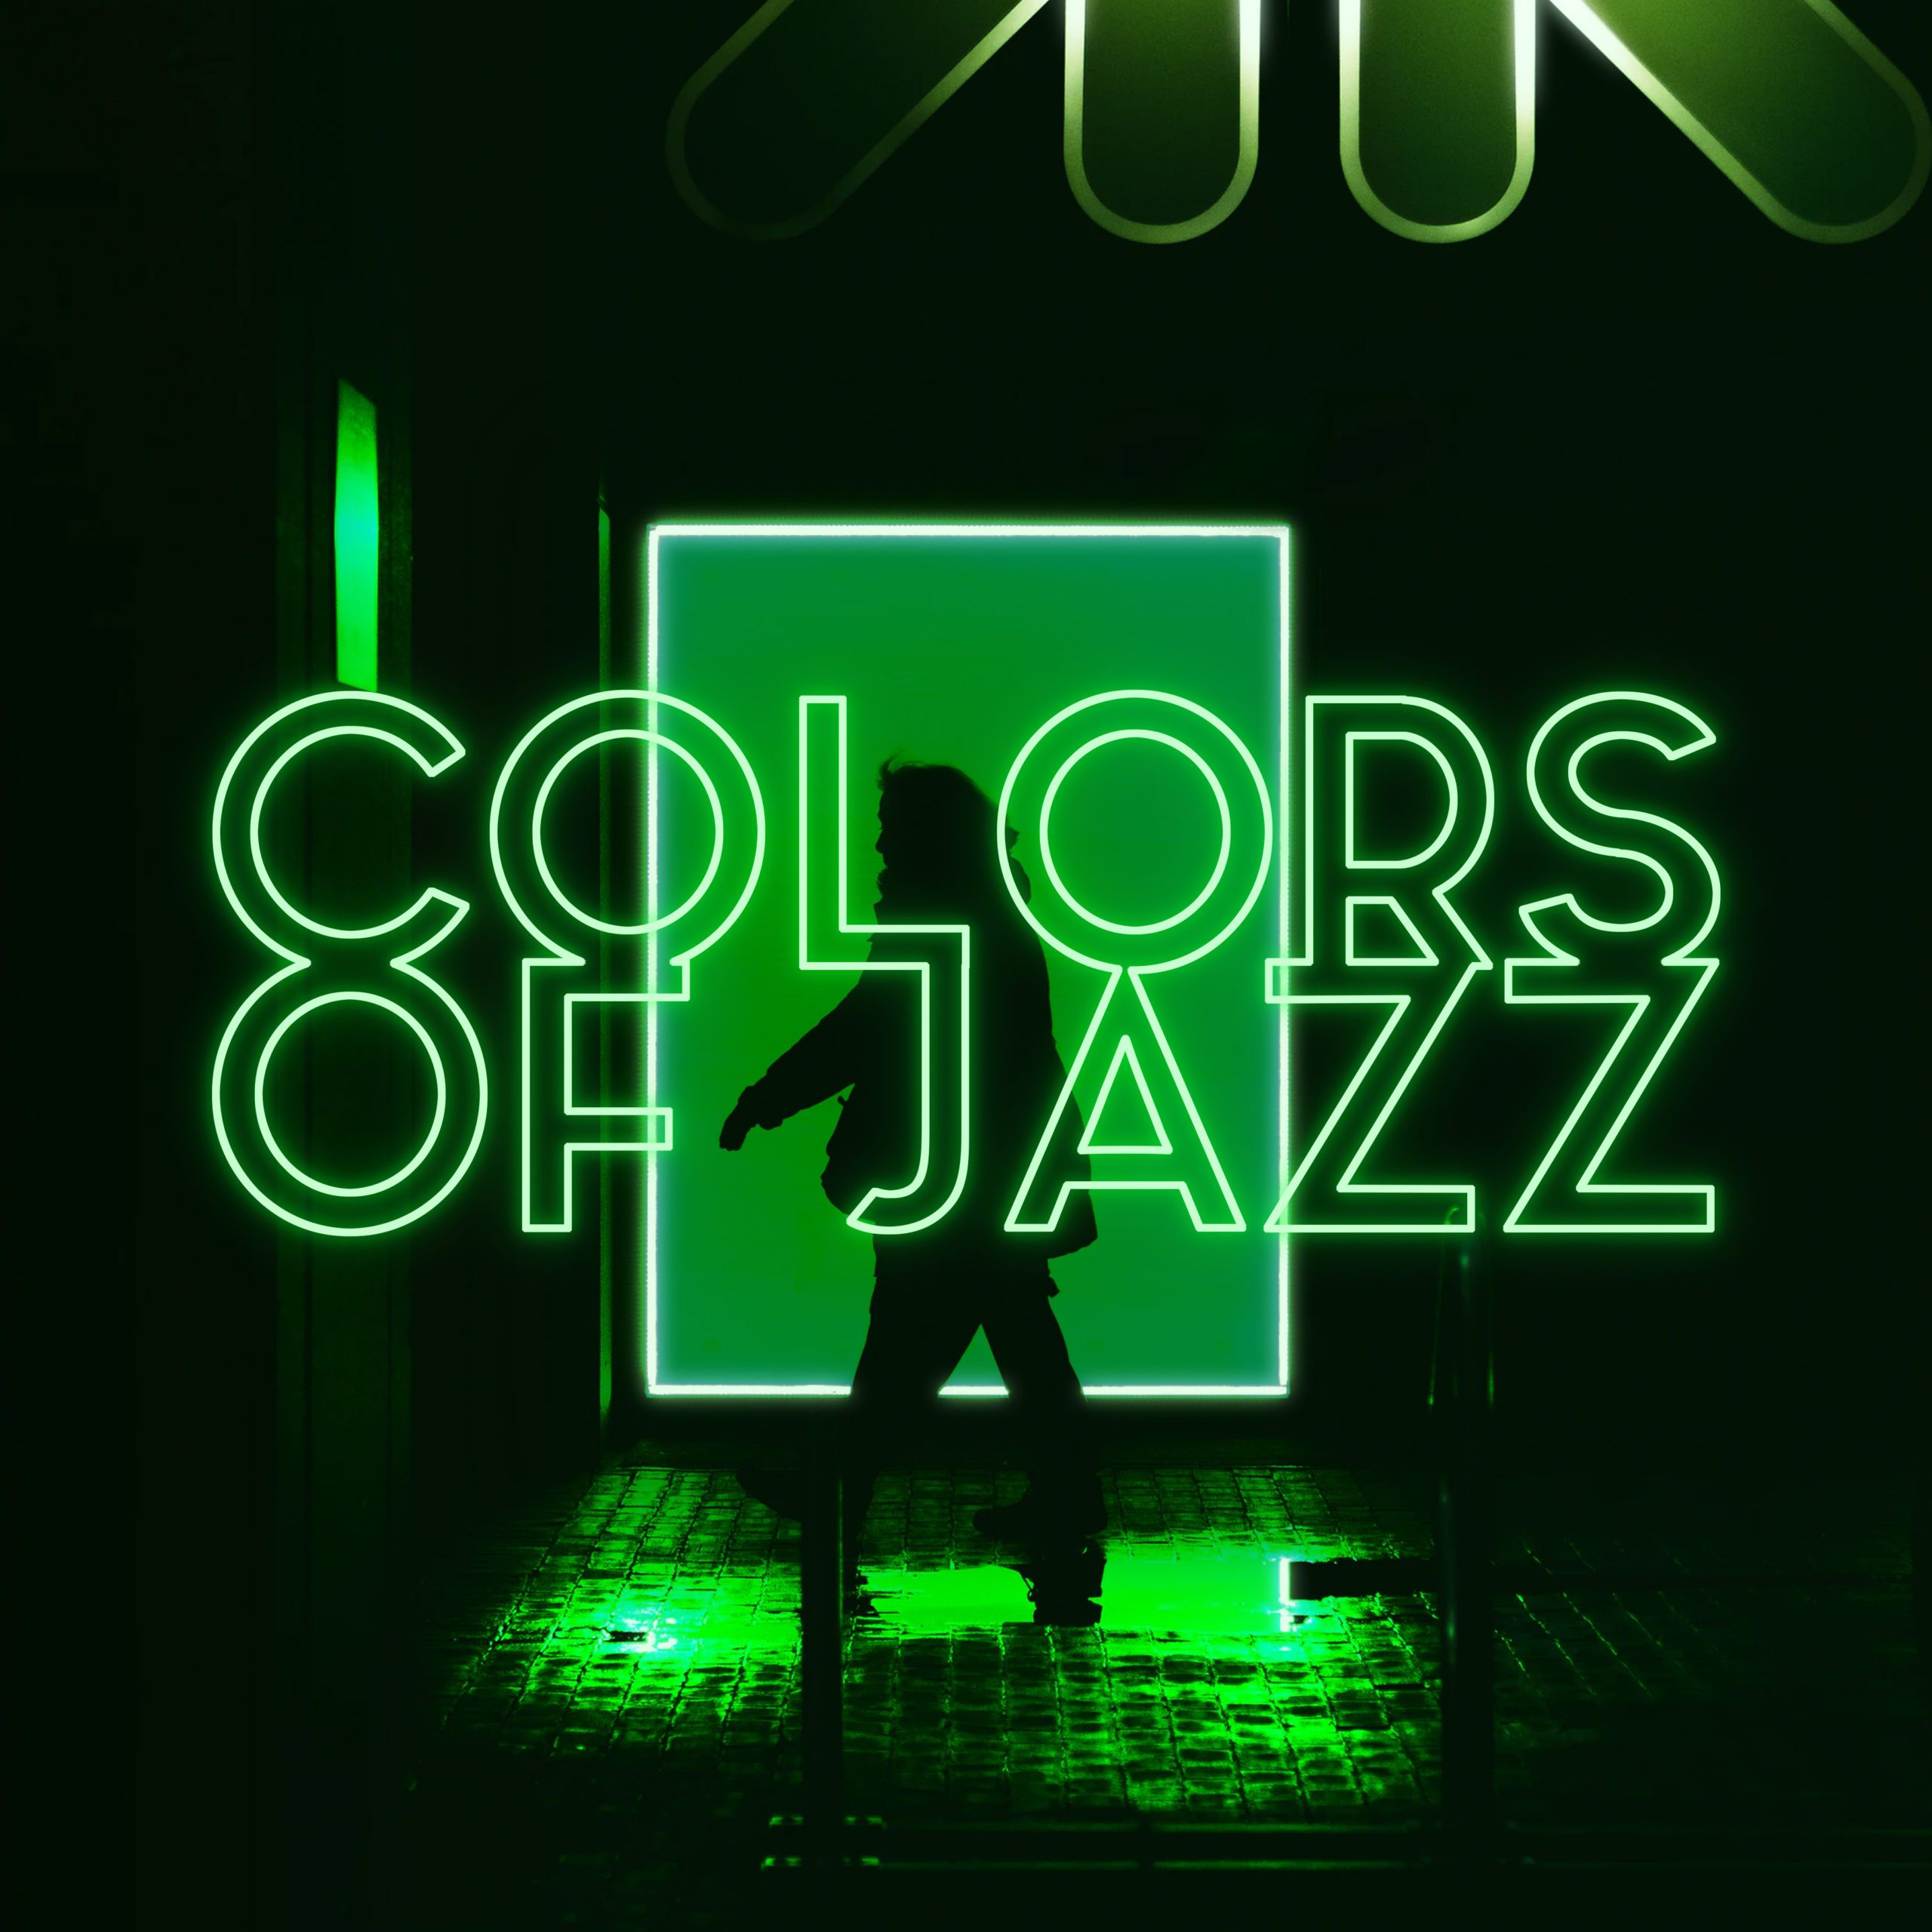 color-of-jazz-shirts-green